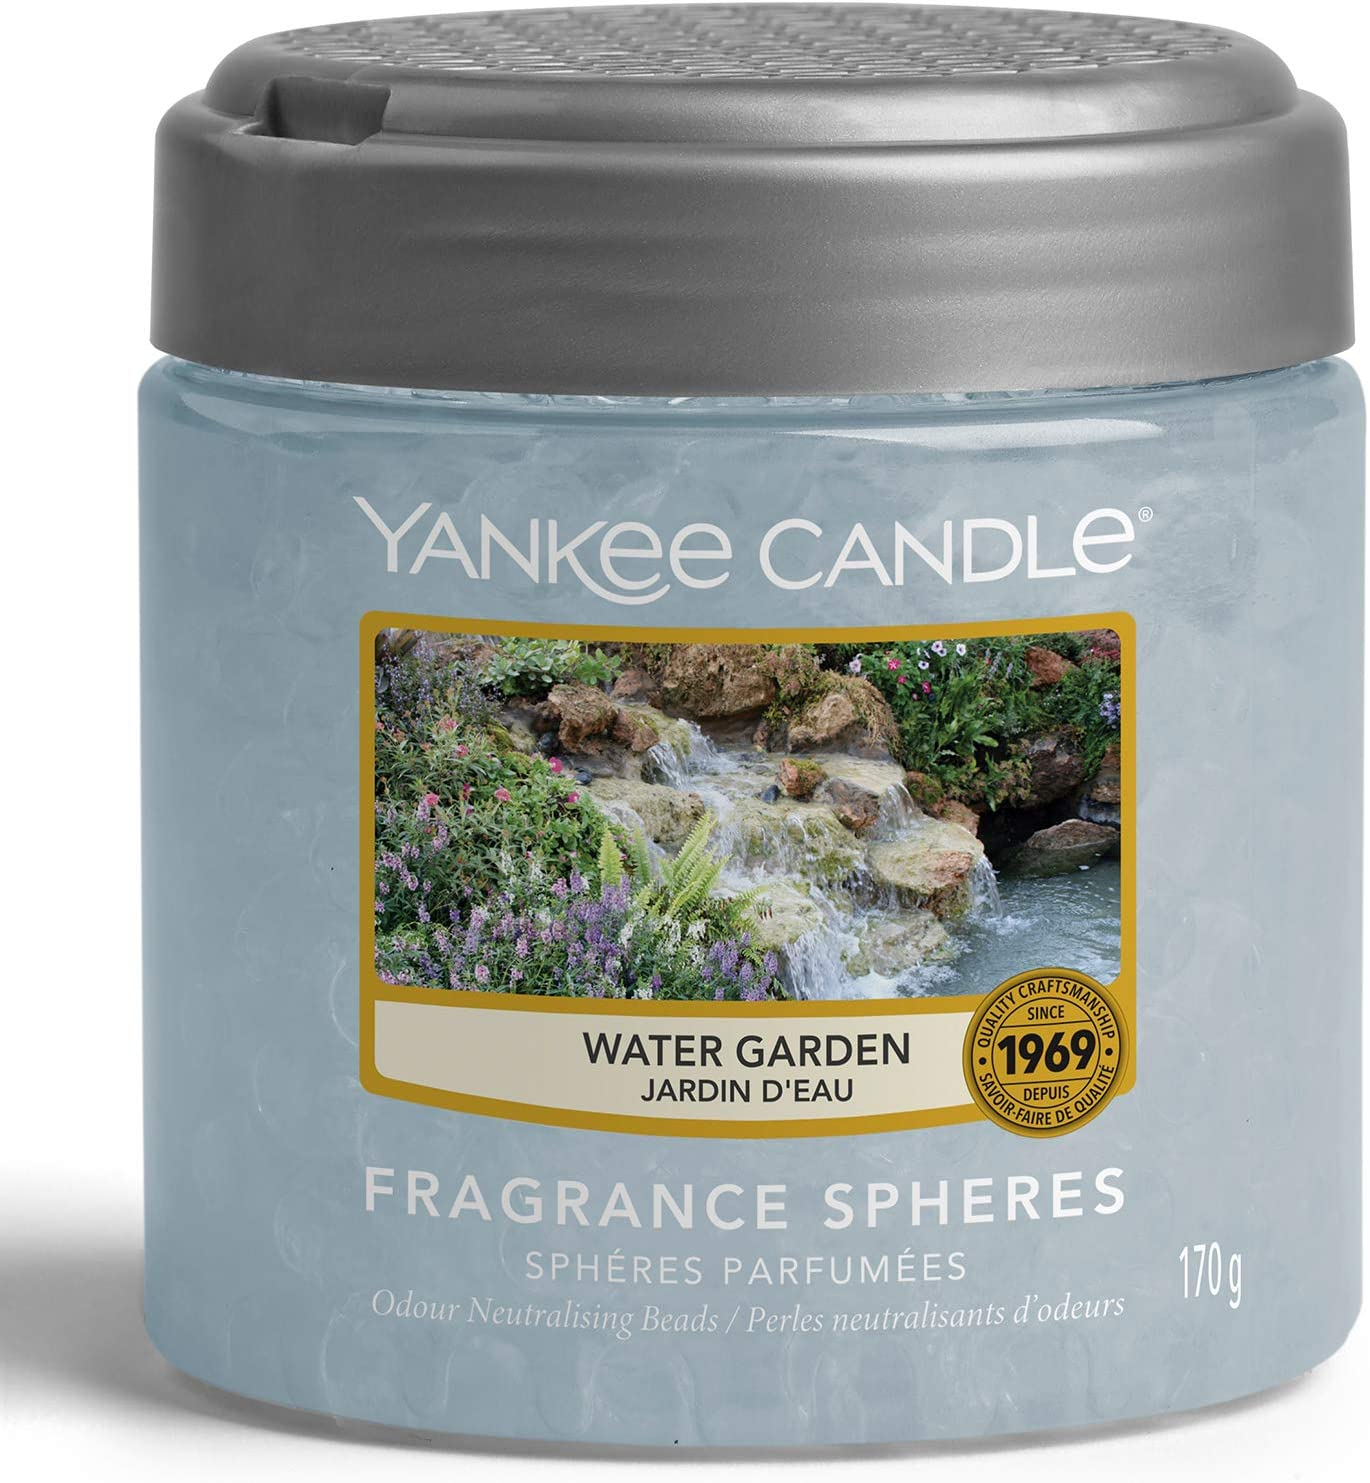 Yankee Candle Water Garden Fragrance Sphere